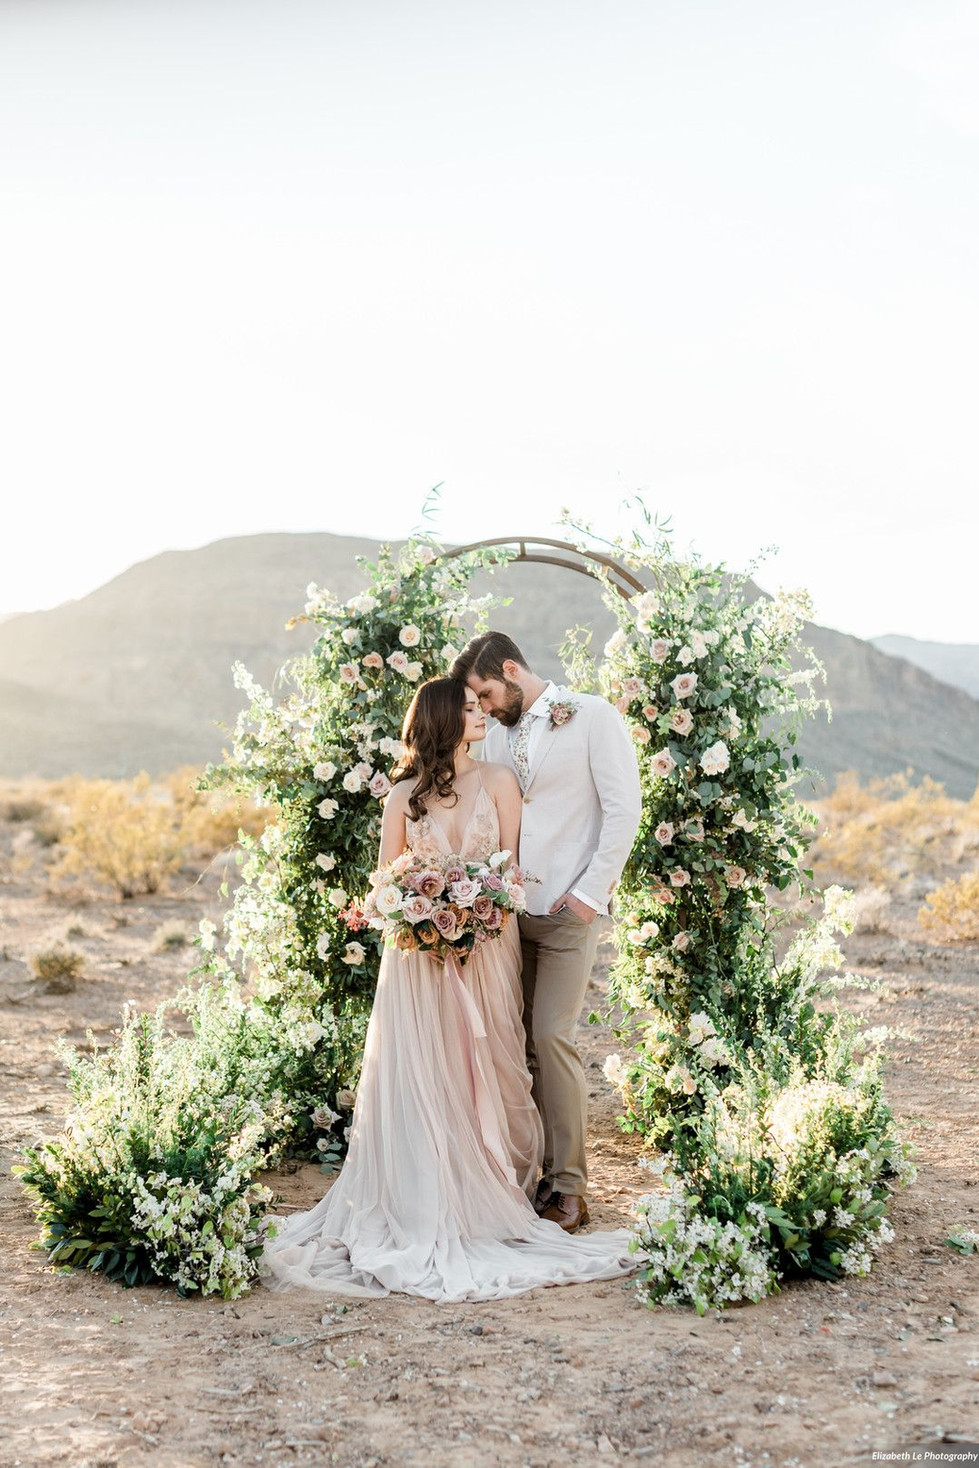 Lush ceremony arch in shades of dusy blush and mauve. Photo: Elizabeth Le